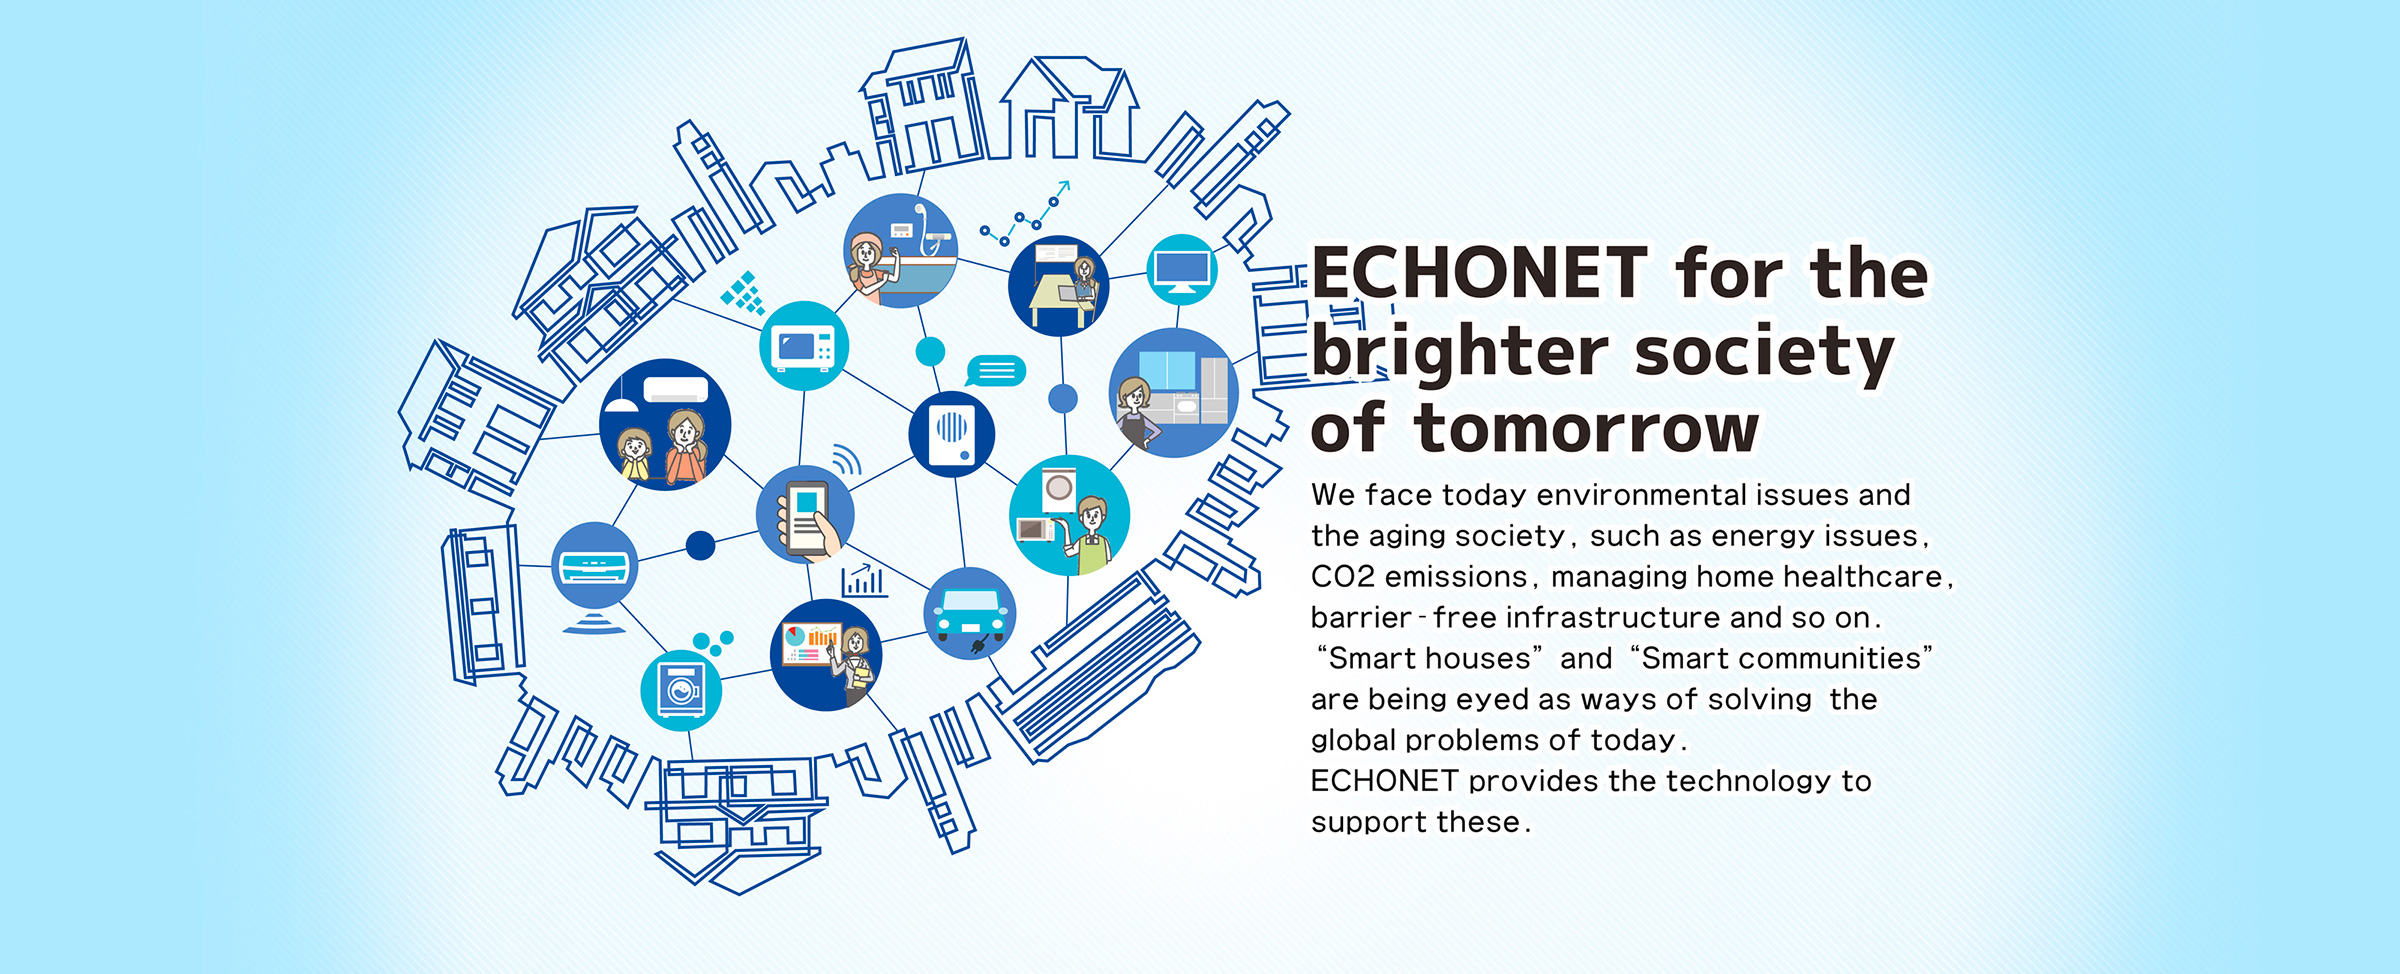 ECHONET for the brighter society of tomorrow